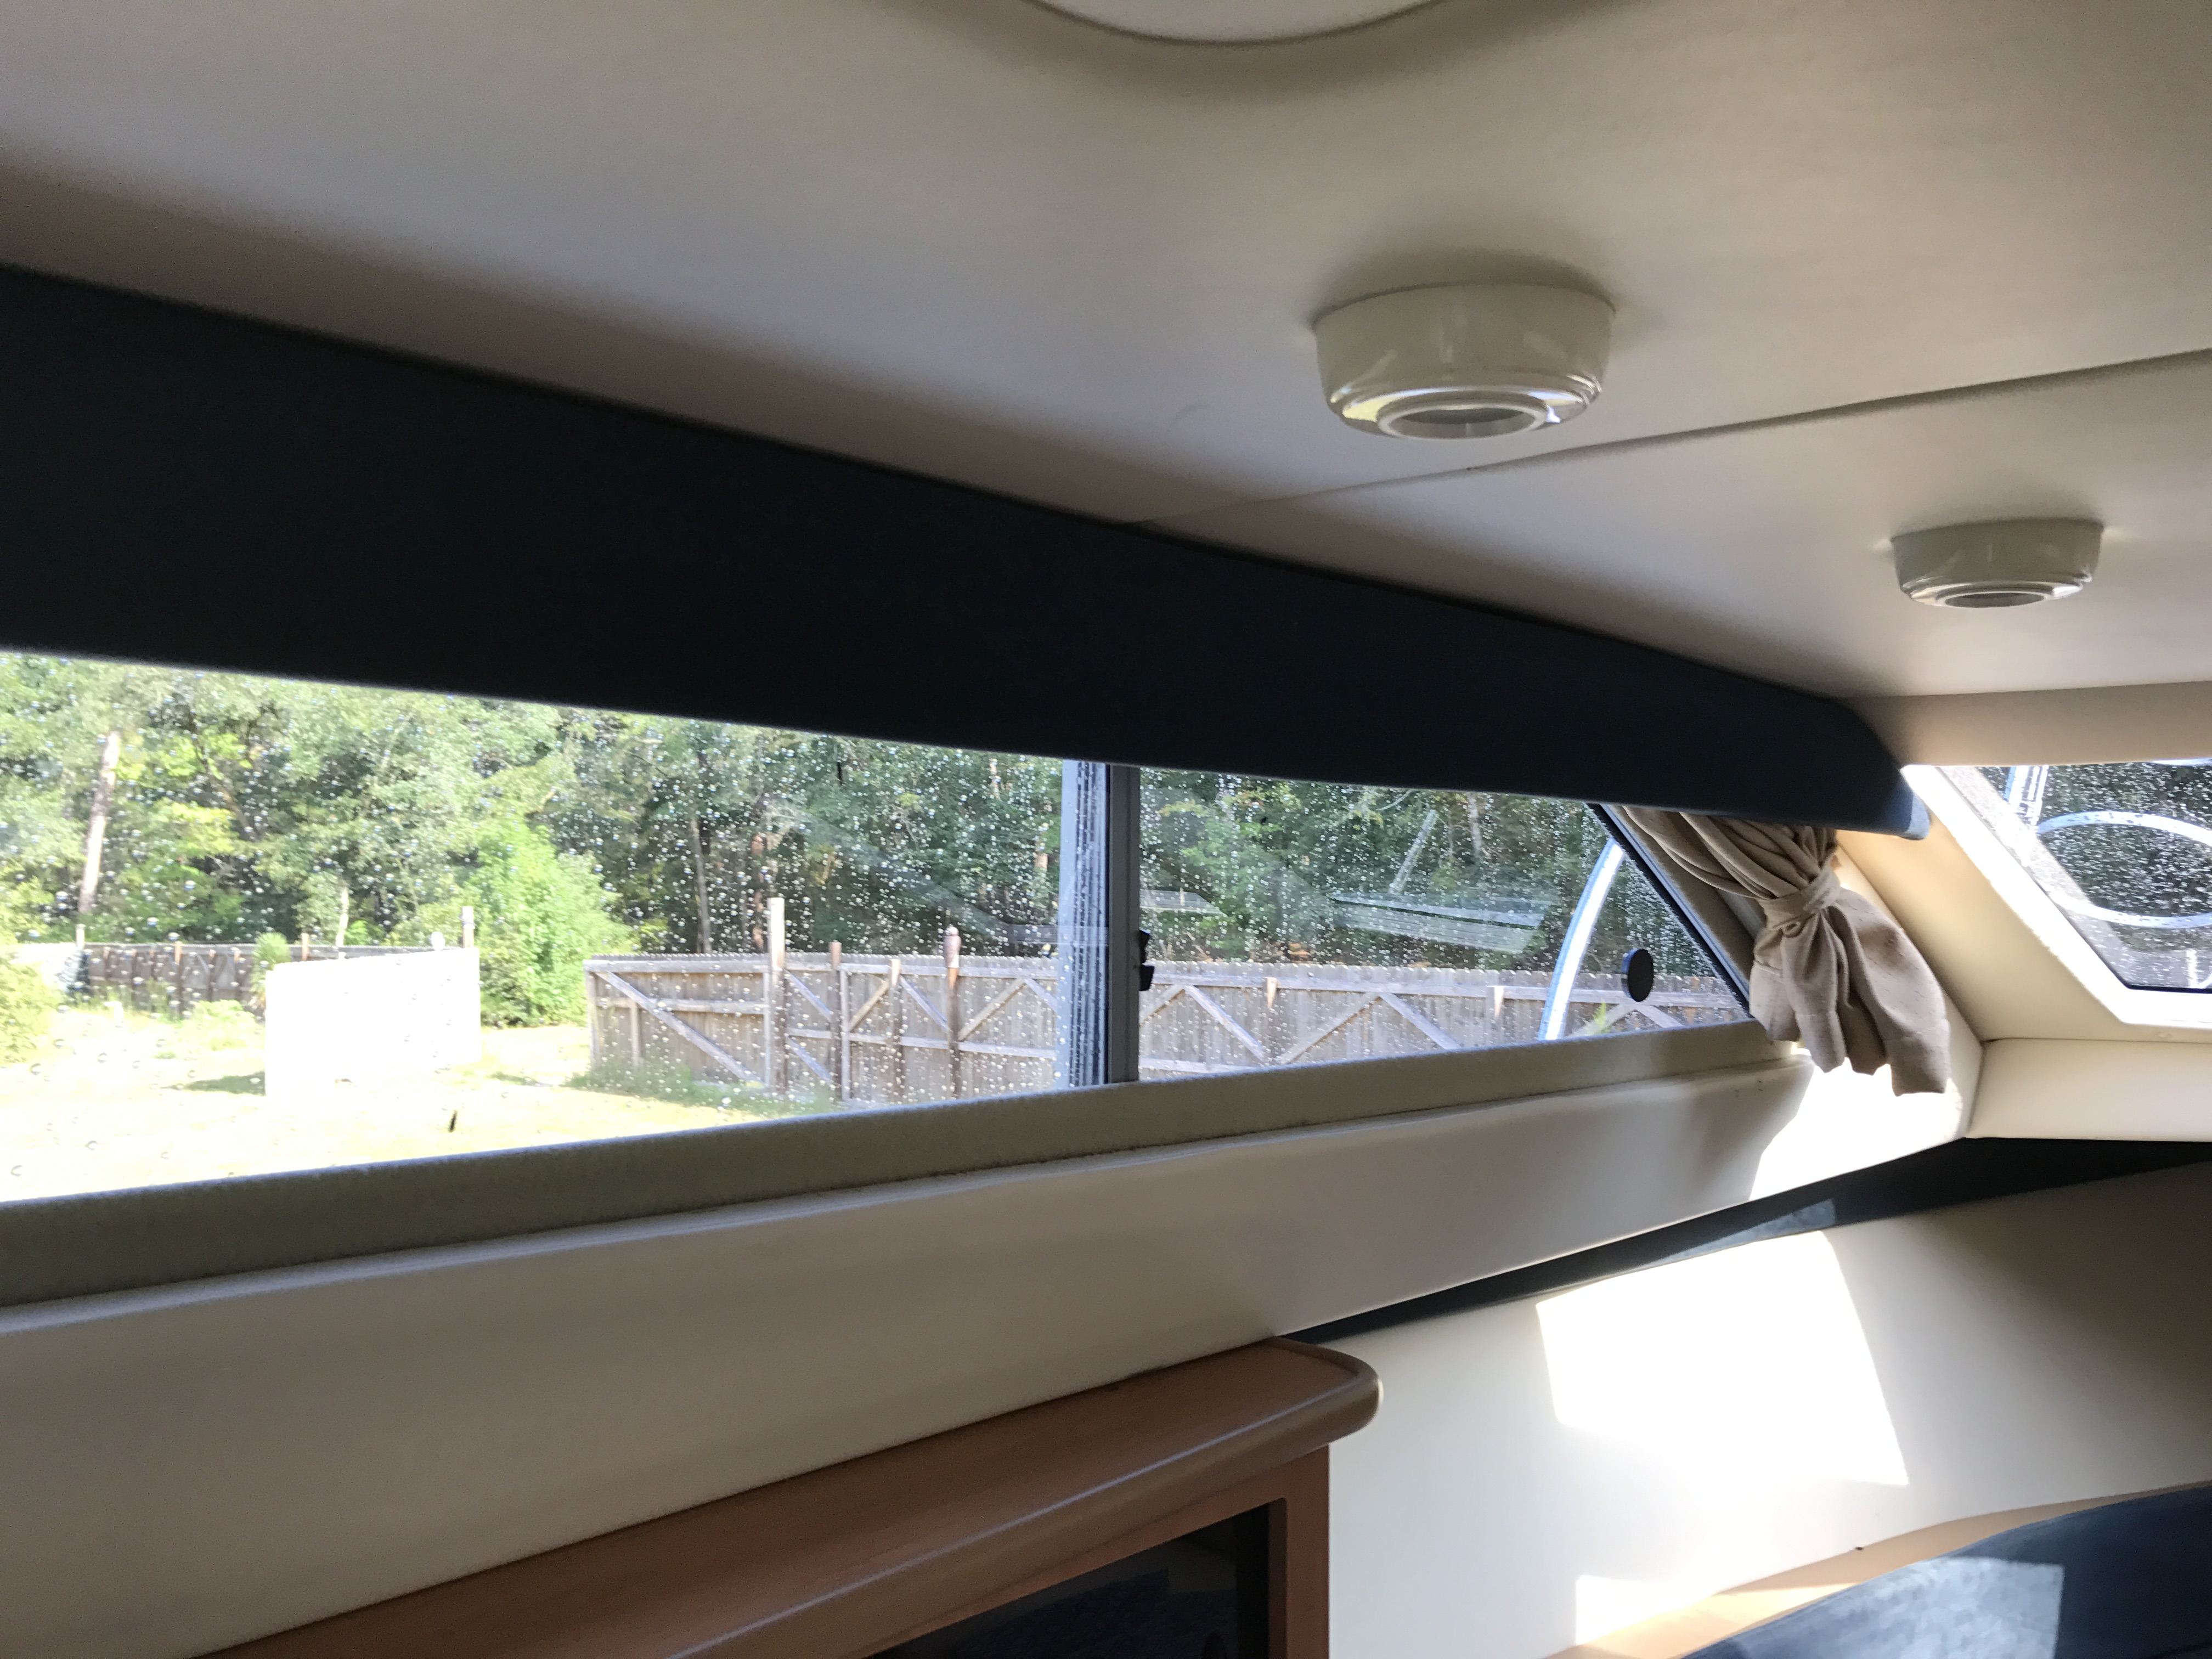 Bayliner Discovery 246 EC - lots of ventilation and light in the cabin